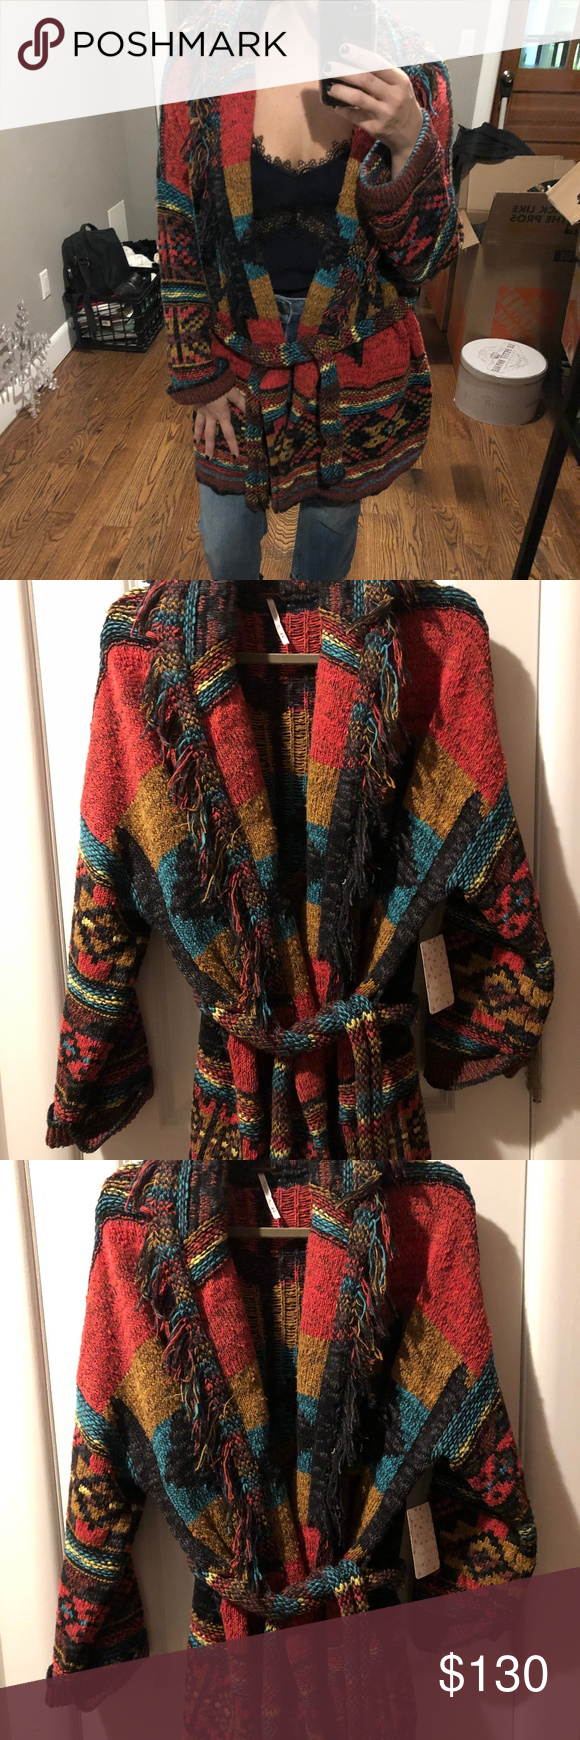 7181a460a LAST ONE! NWT Free People Wild West Sweater I will be removing and ...